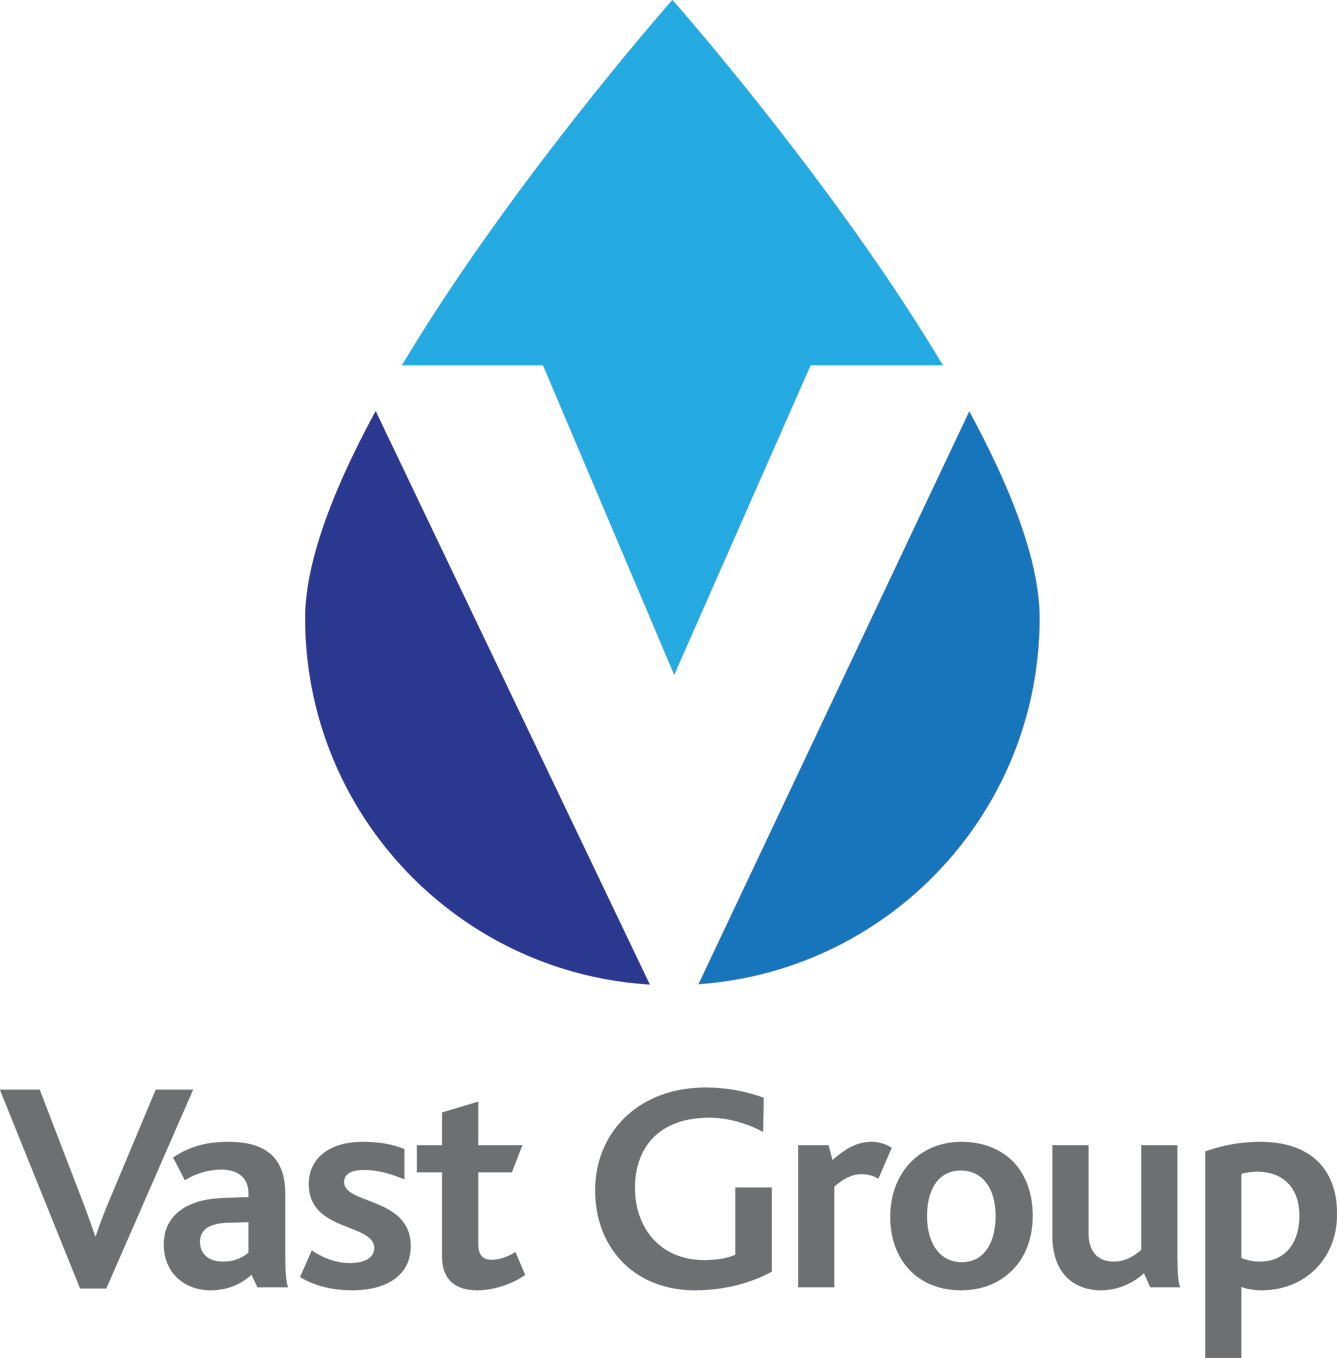 VAST GROUP Logo CMYK (003)